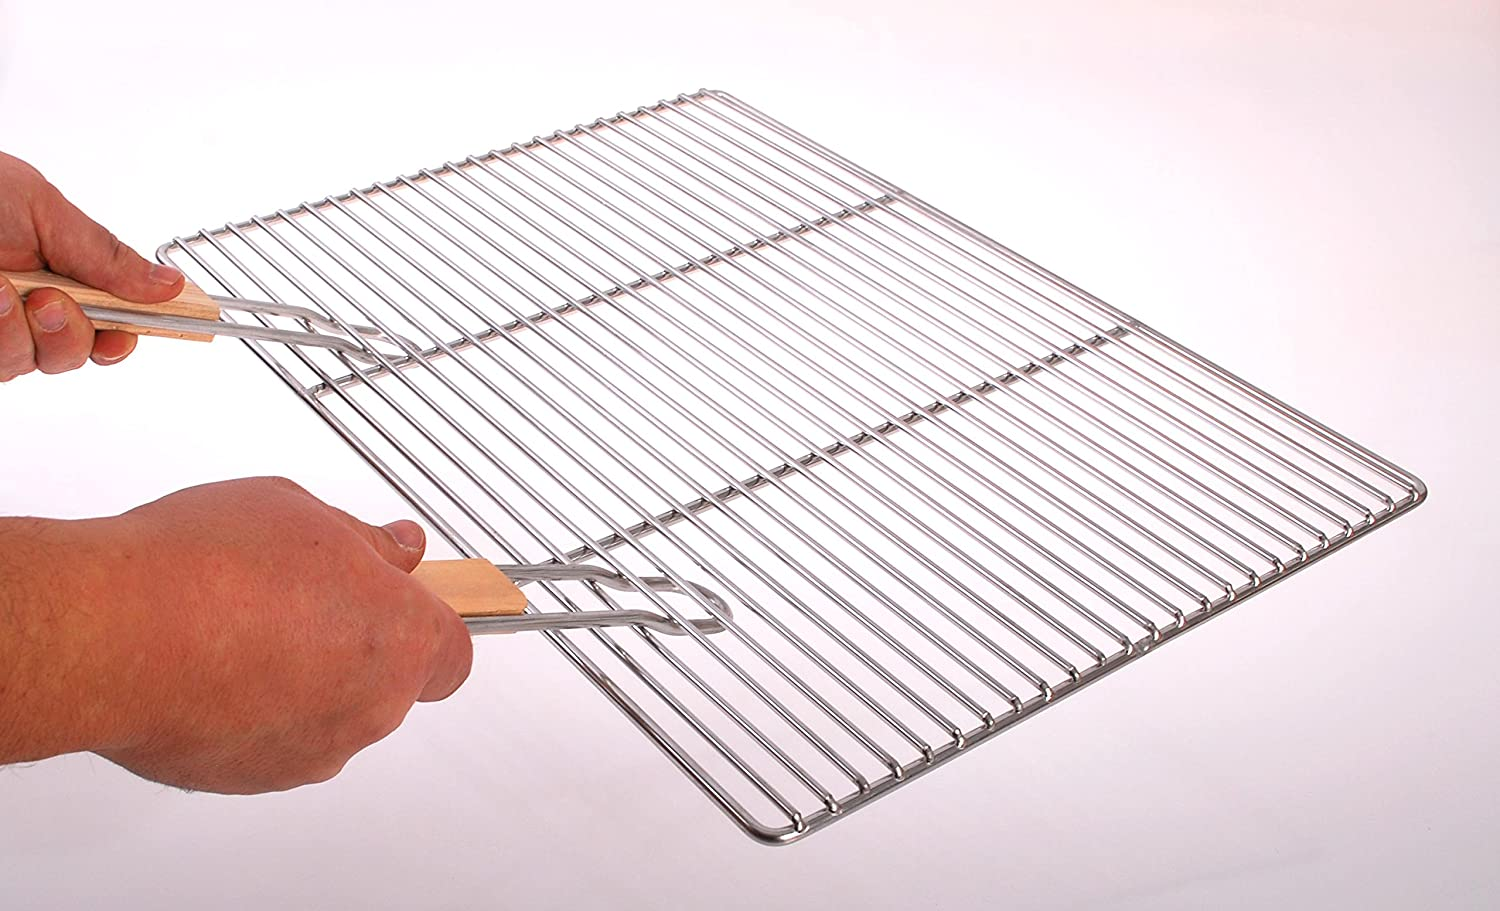 Stainless steel BBQ coocking and grill grate with handles 54x34 cm grill rack